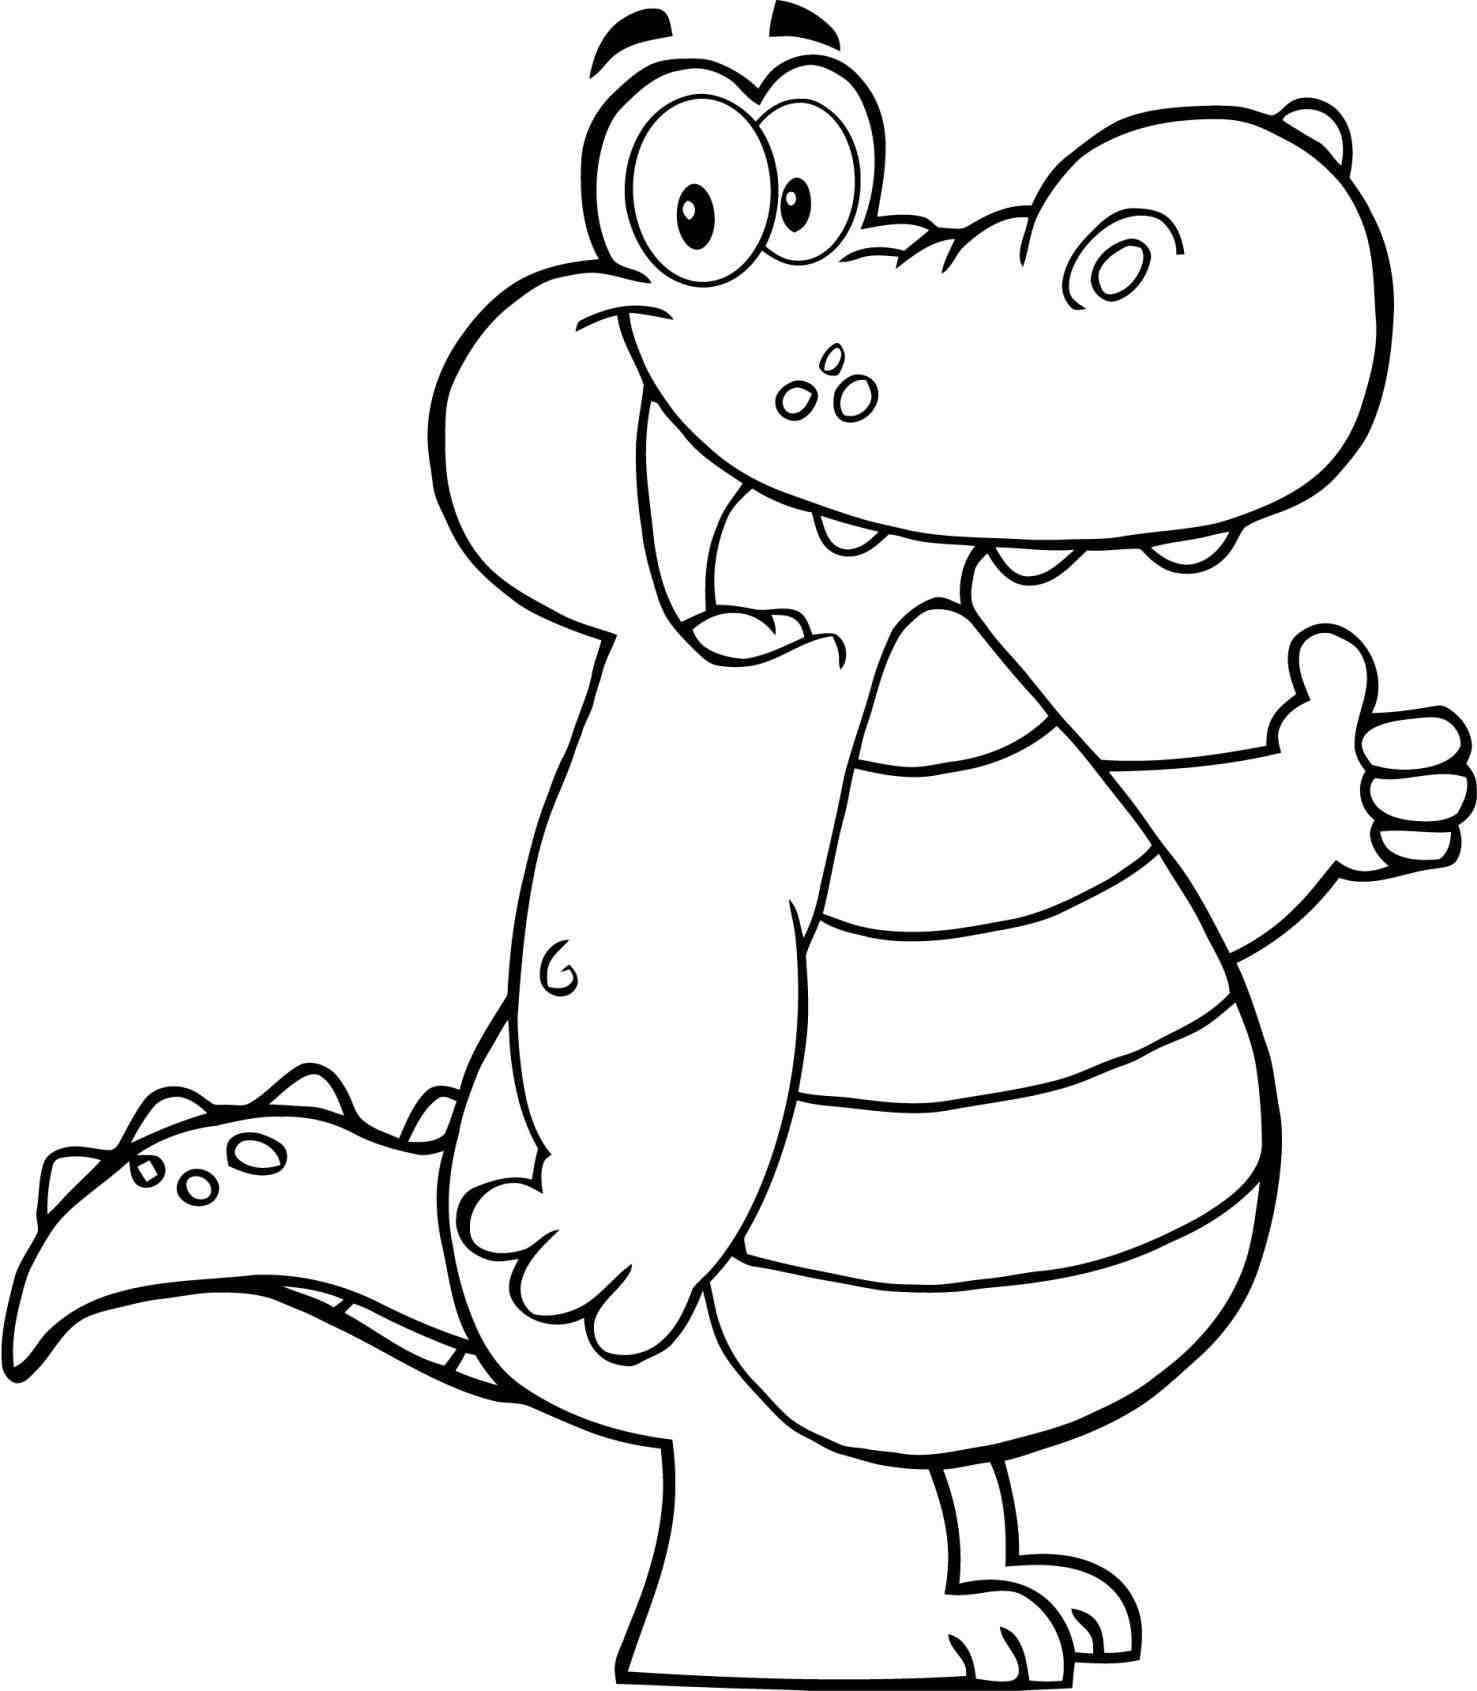 outline picture of crocodile alligator outline drawing at getdrawings free download picture crocodile outline of